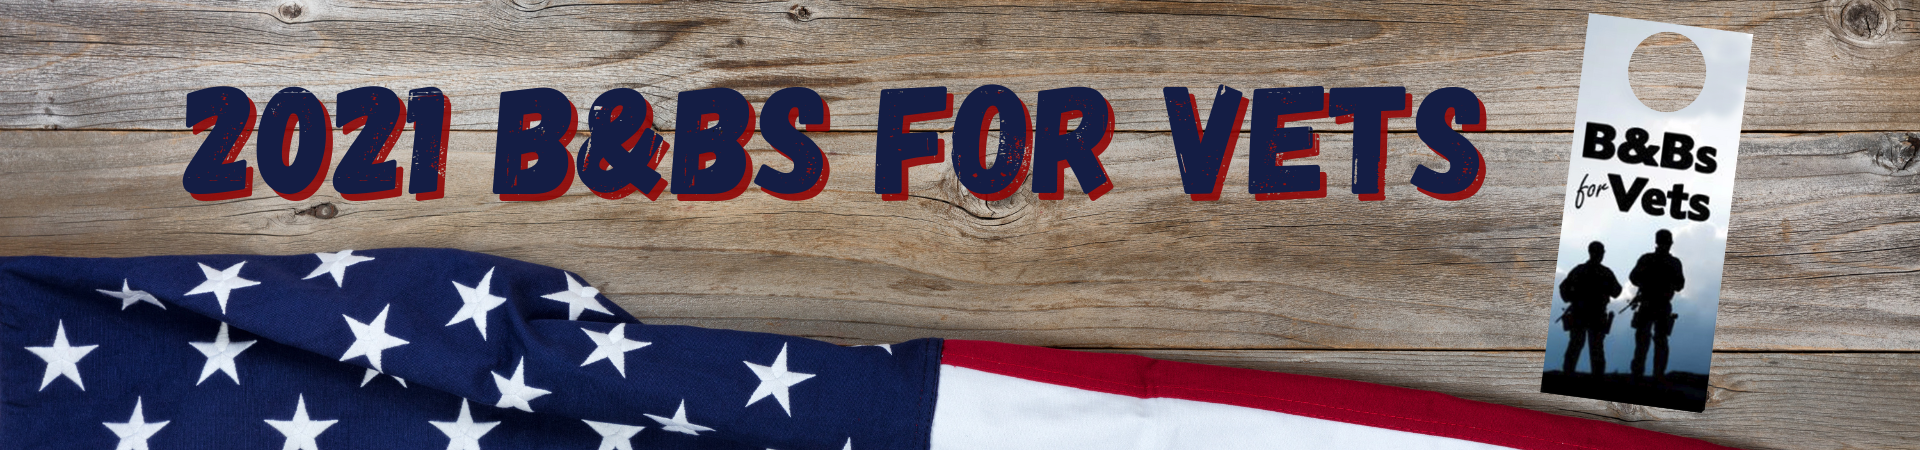 B&Bs for Vets - properties needed on wooden background with flag of USA